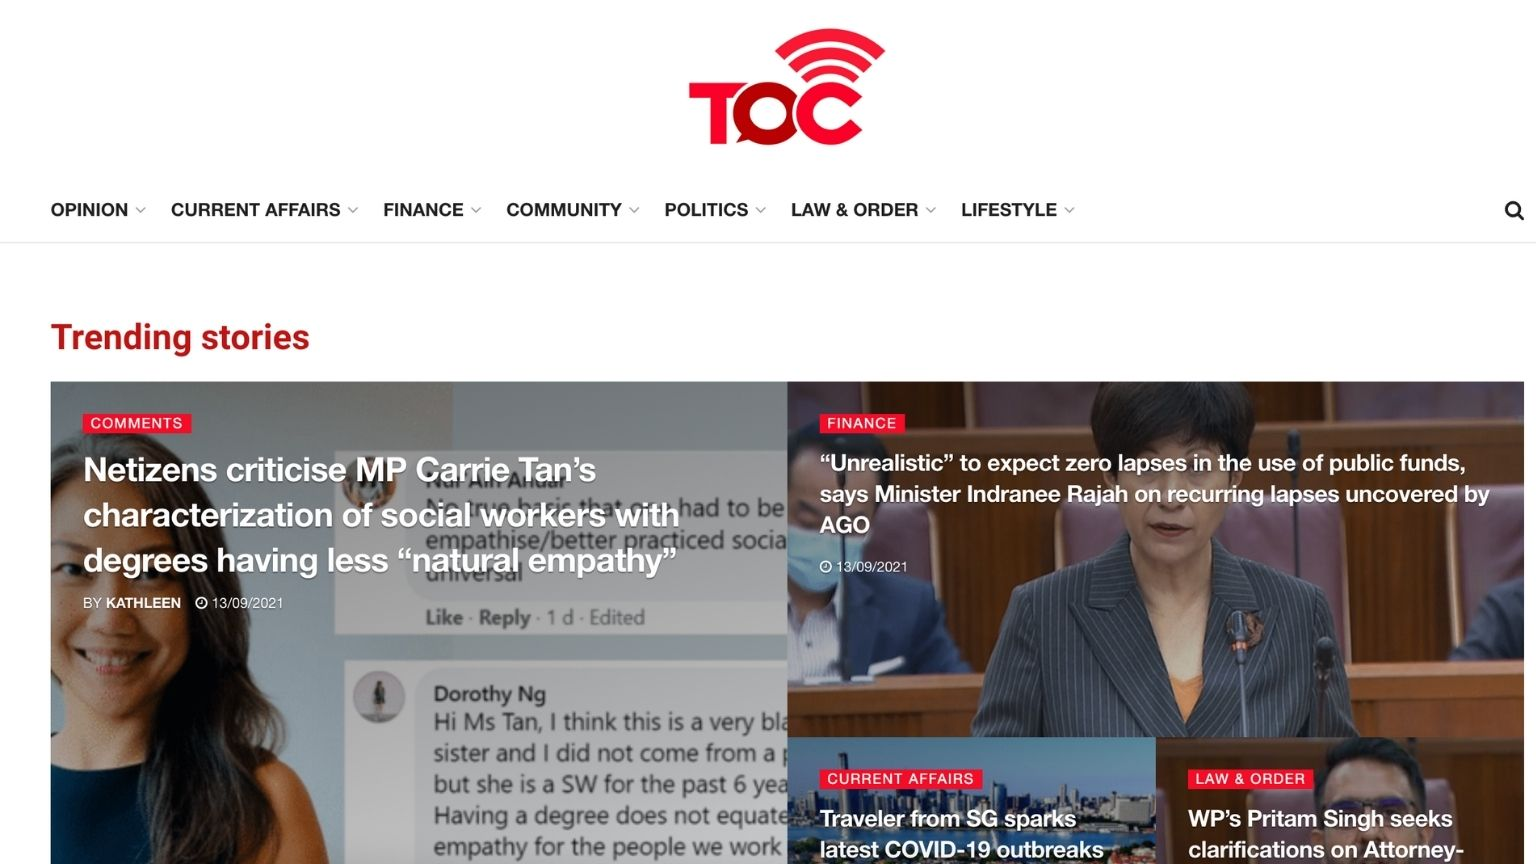 Singapore revokes license of online news outlet that often criticizes government